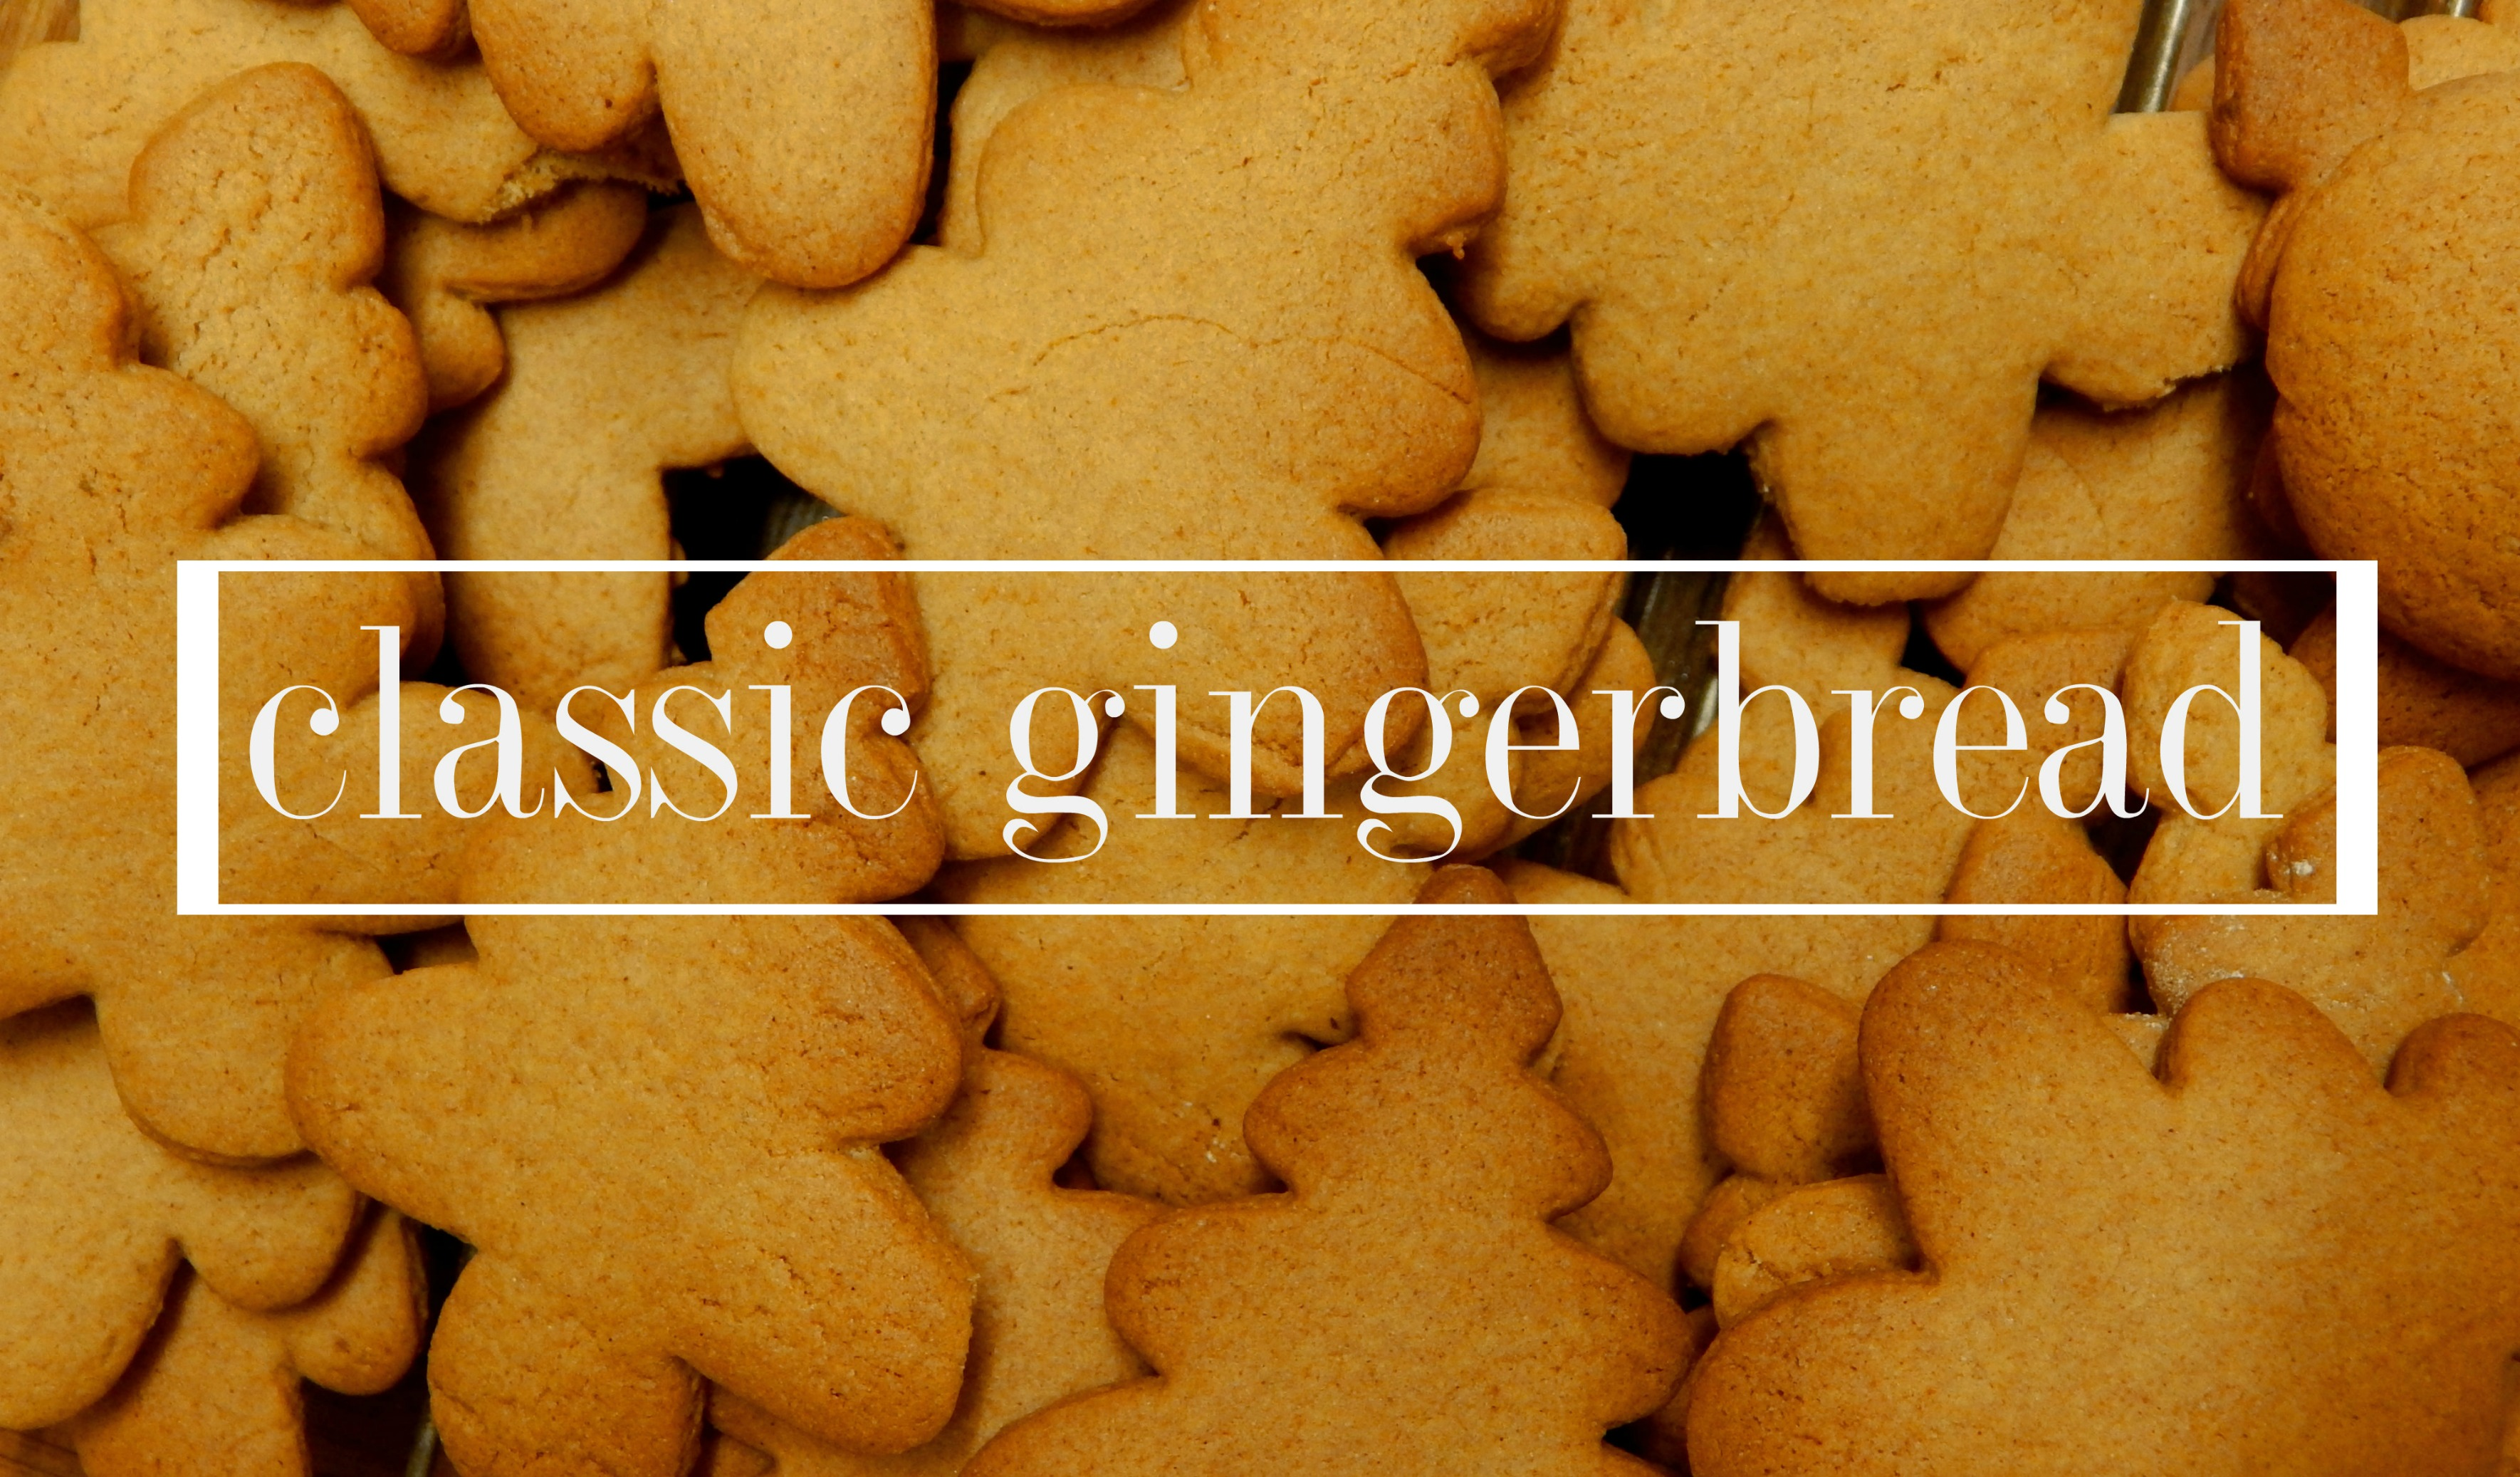 classic gingerbread